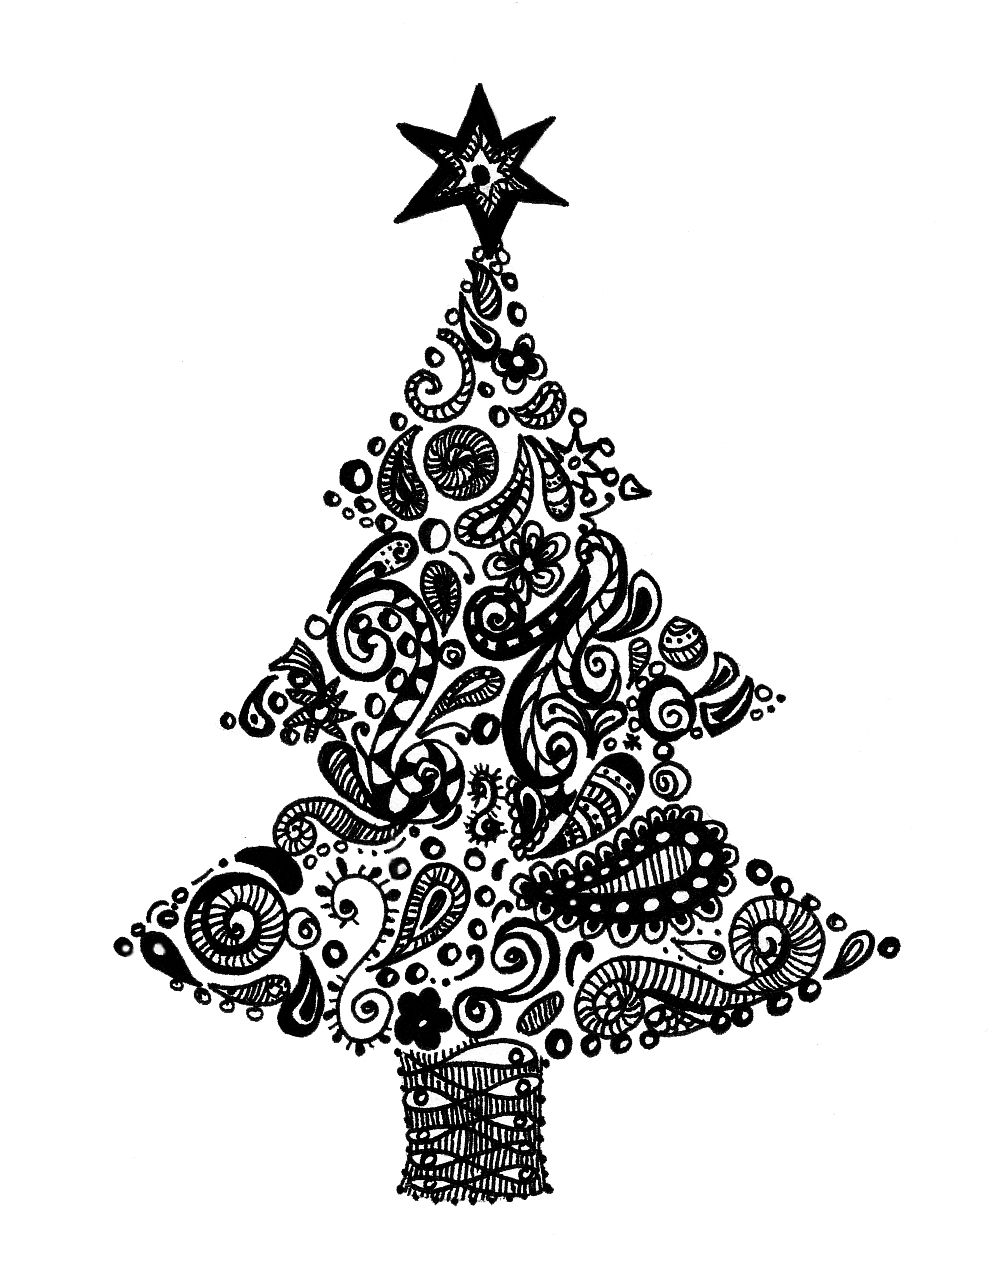 Zentangle+Patterns+for+Beginners simple Christmas tree